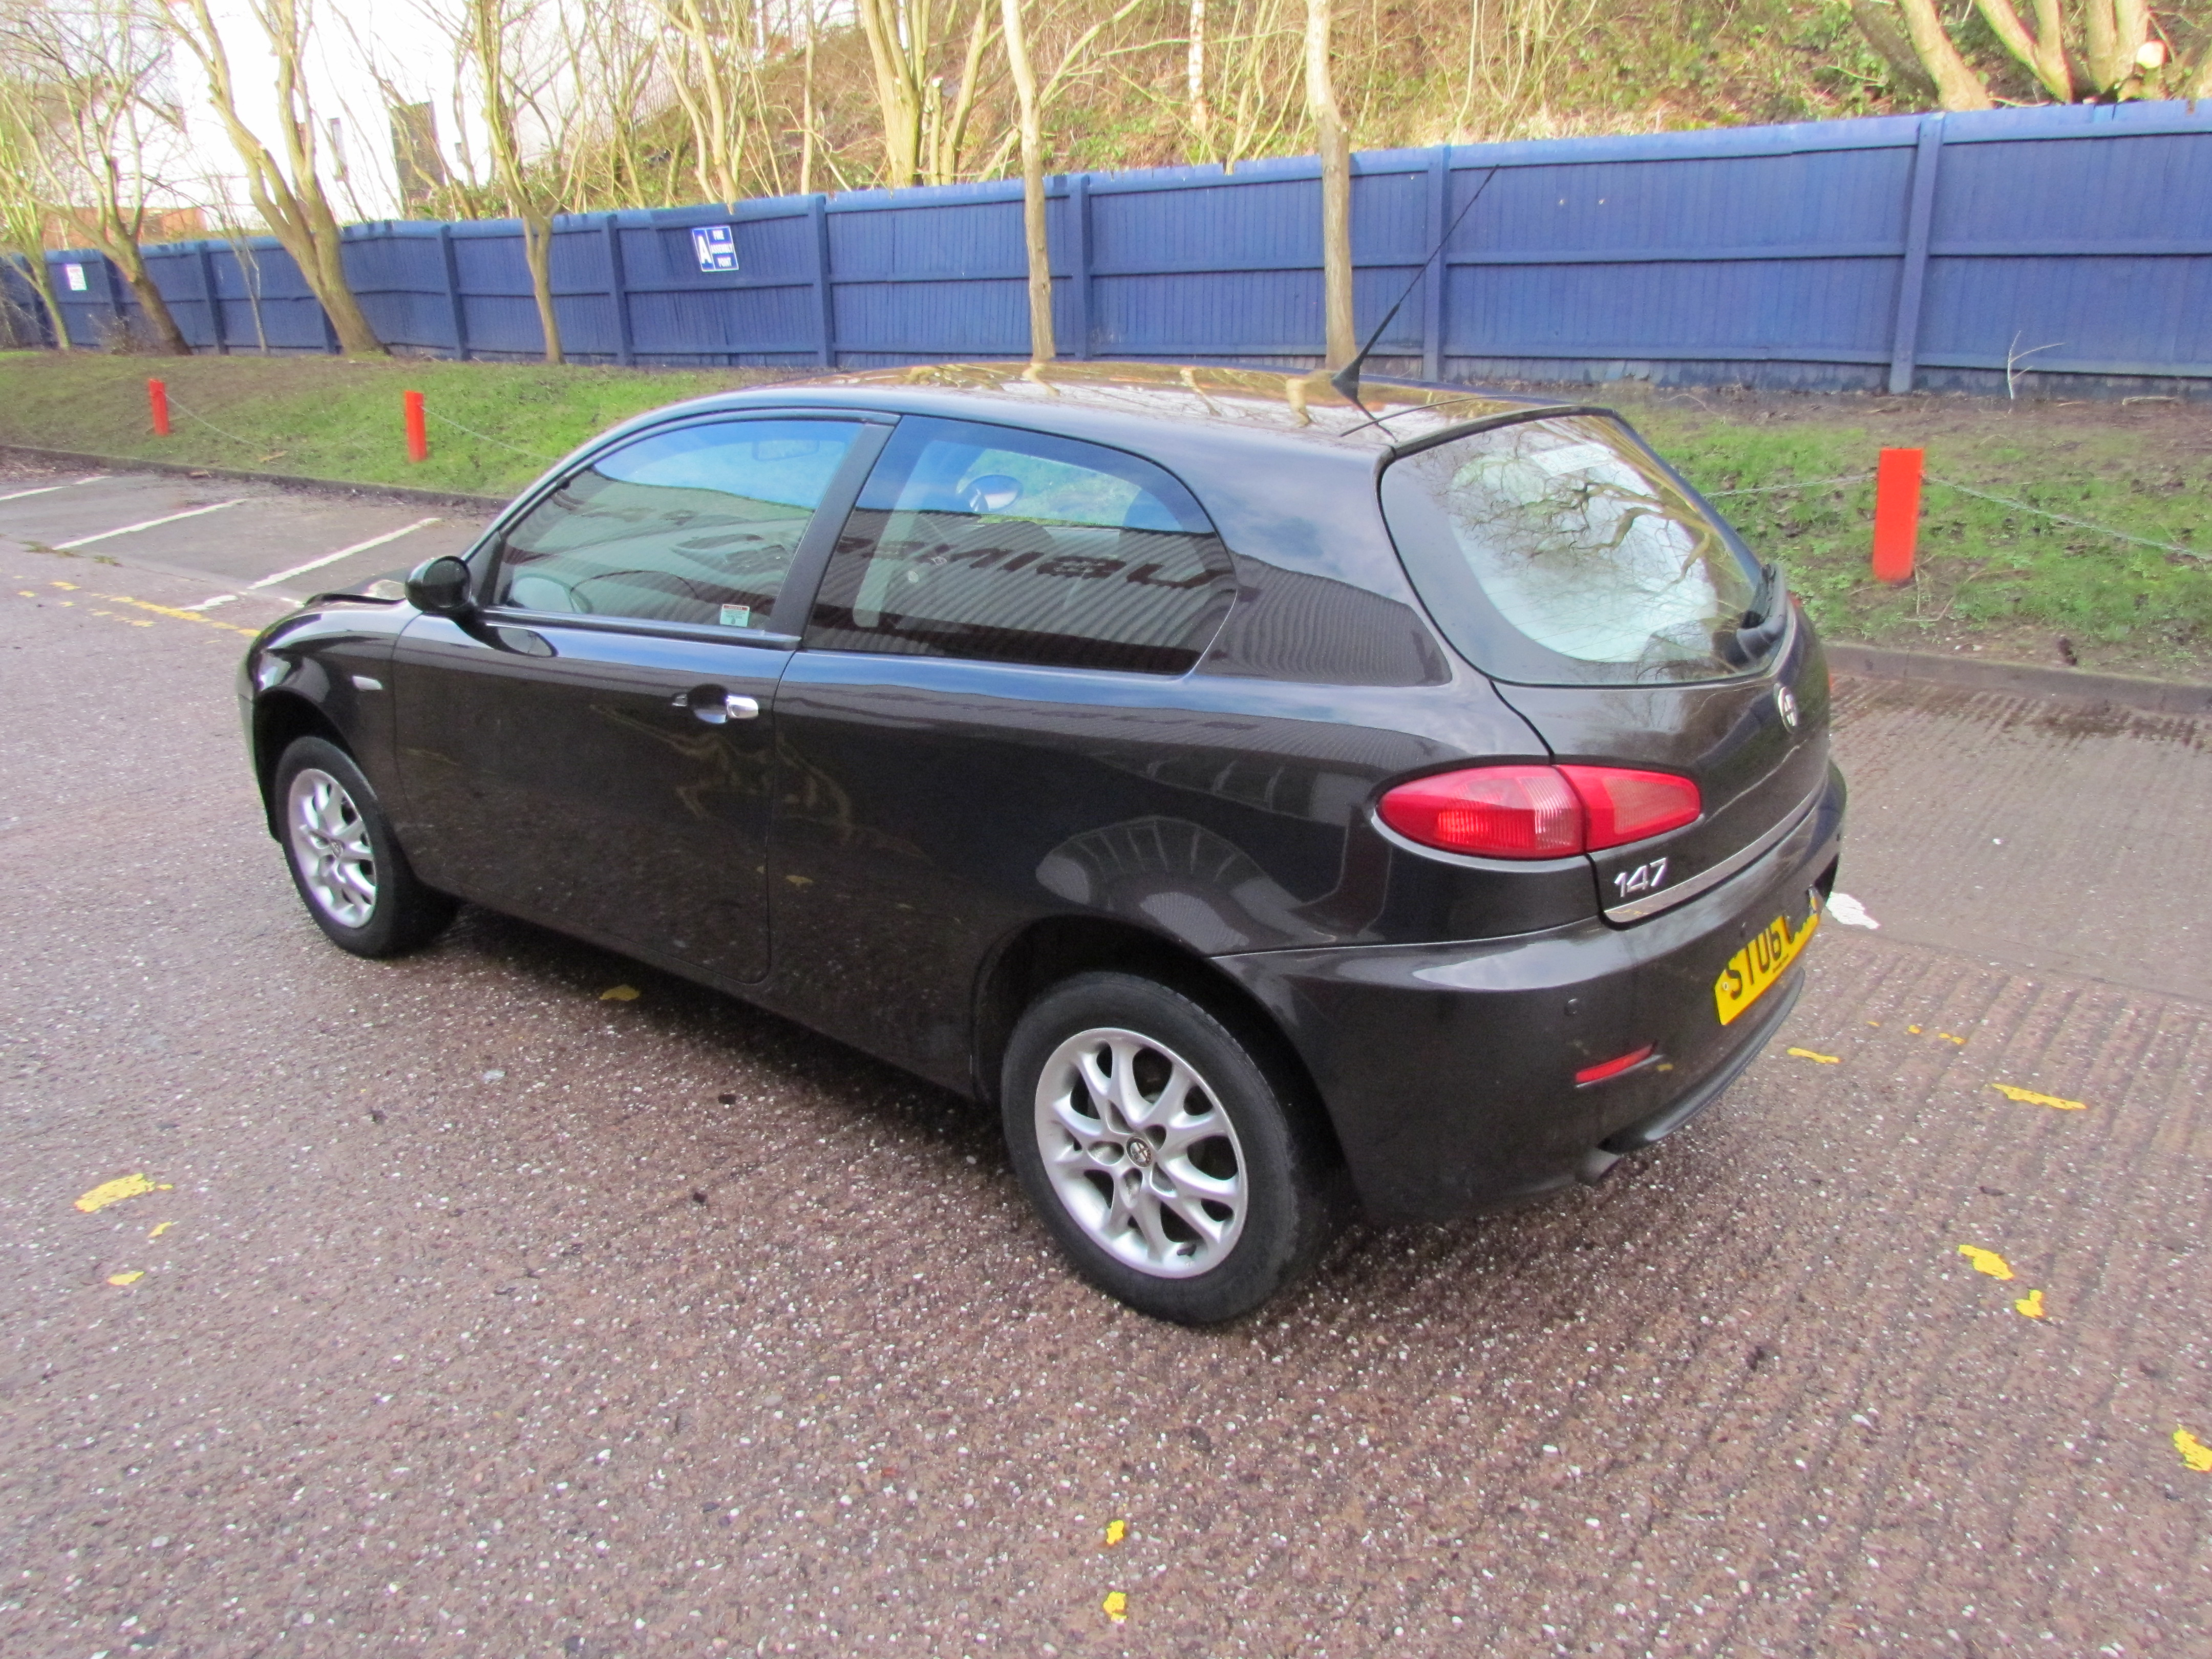 alfa romeo 147 2006 facelift breaking for spares italia autos. Black Bedroom Furniture Sets. Home Design Ideas